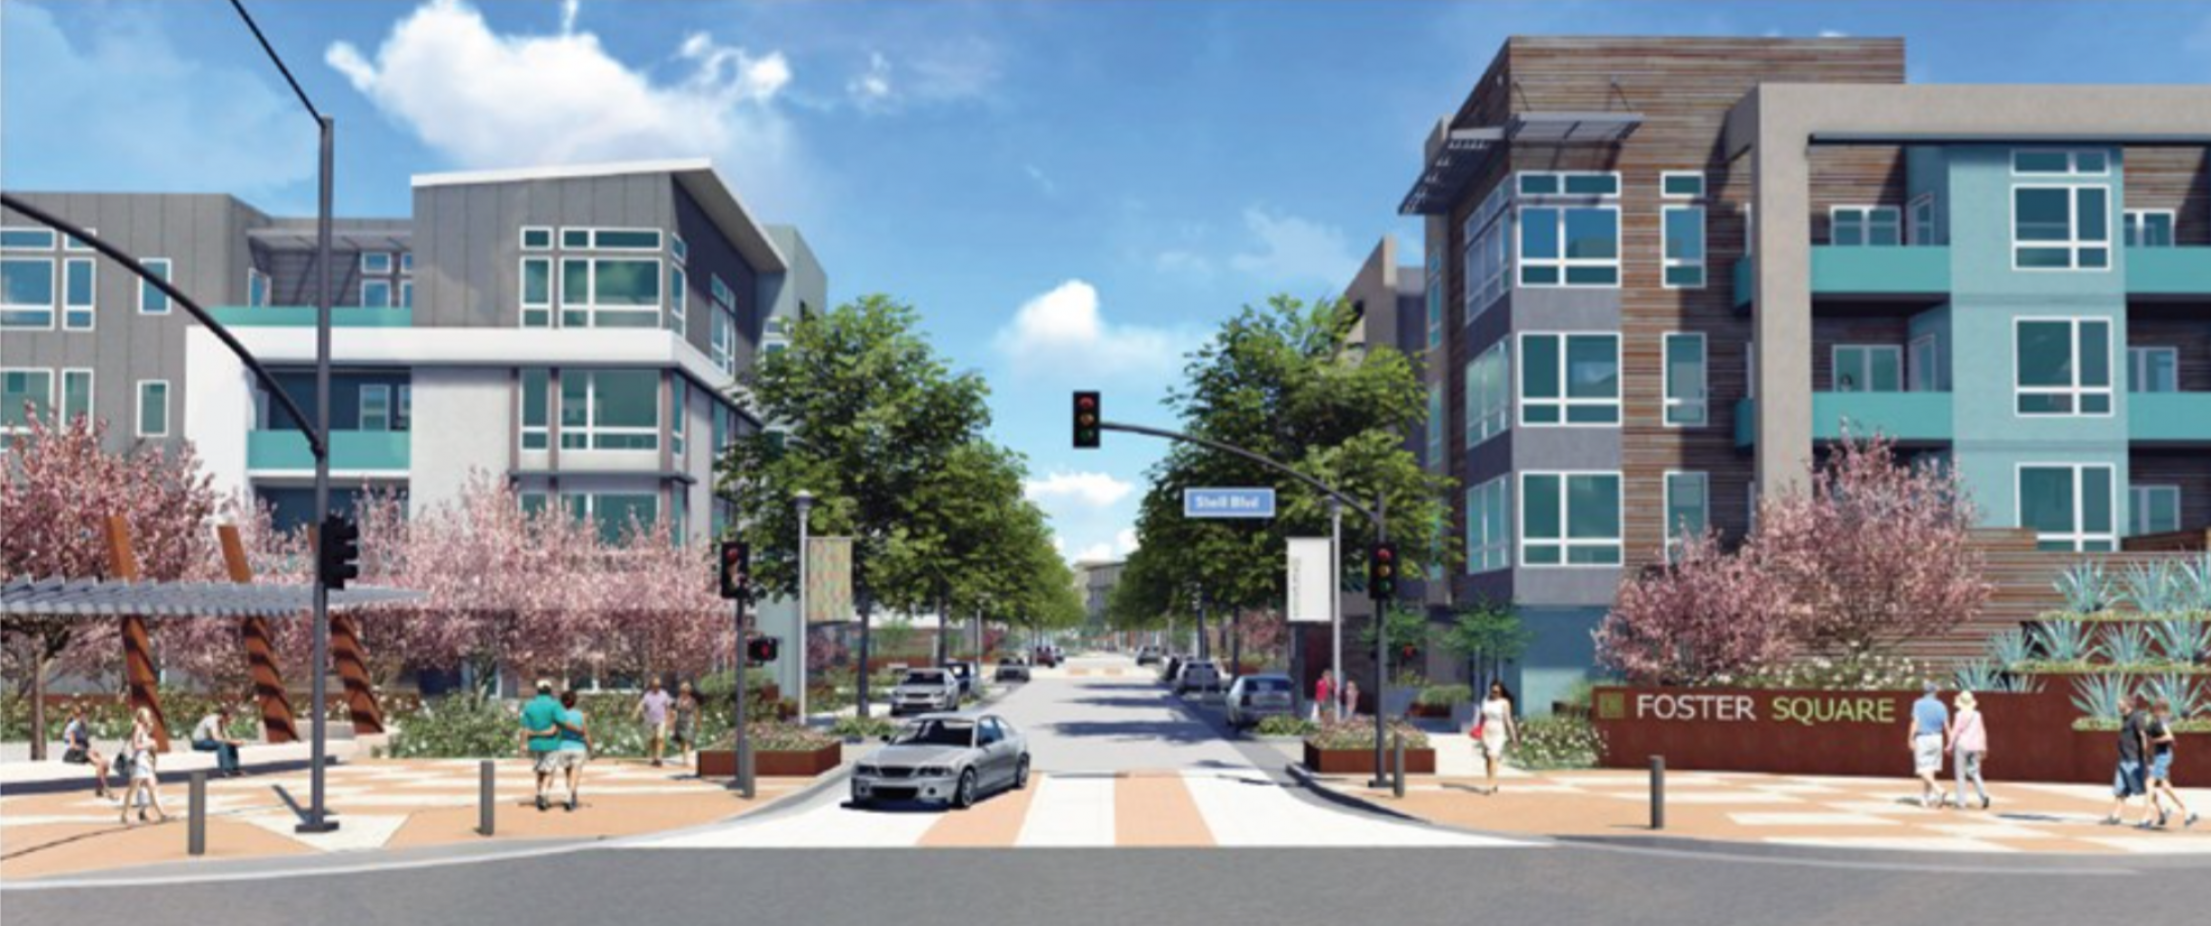 Foster Square Foster City Lennar Homes Atria MidPen Housing Blake|Griggs Properties The New Home